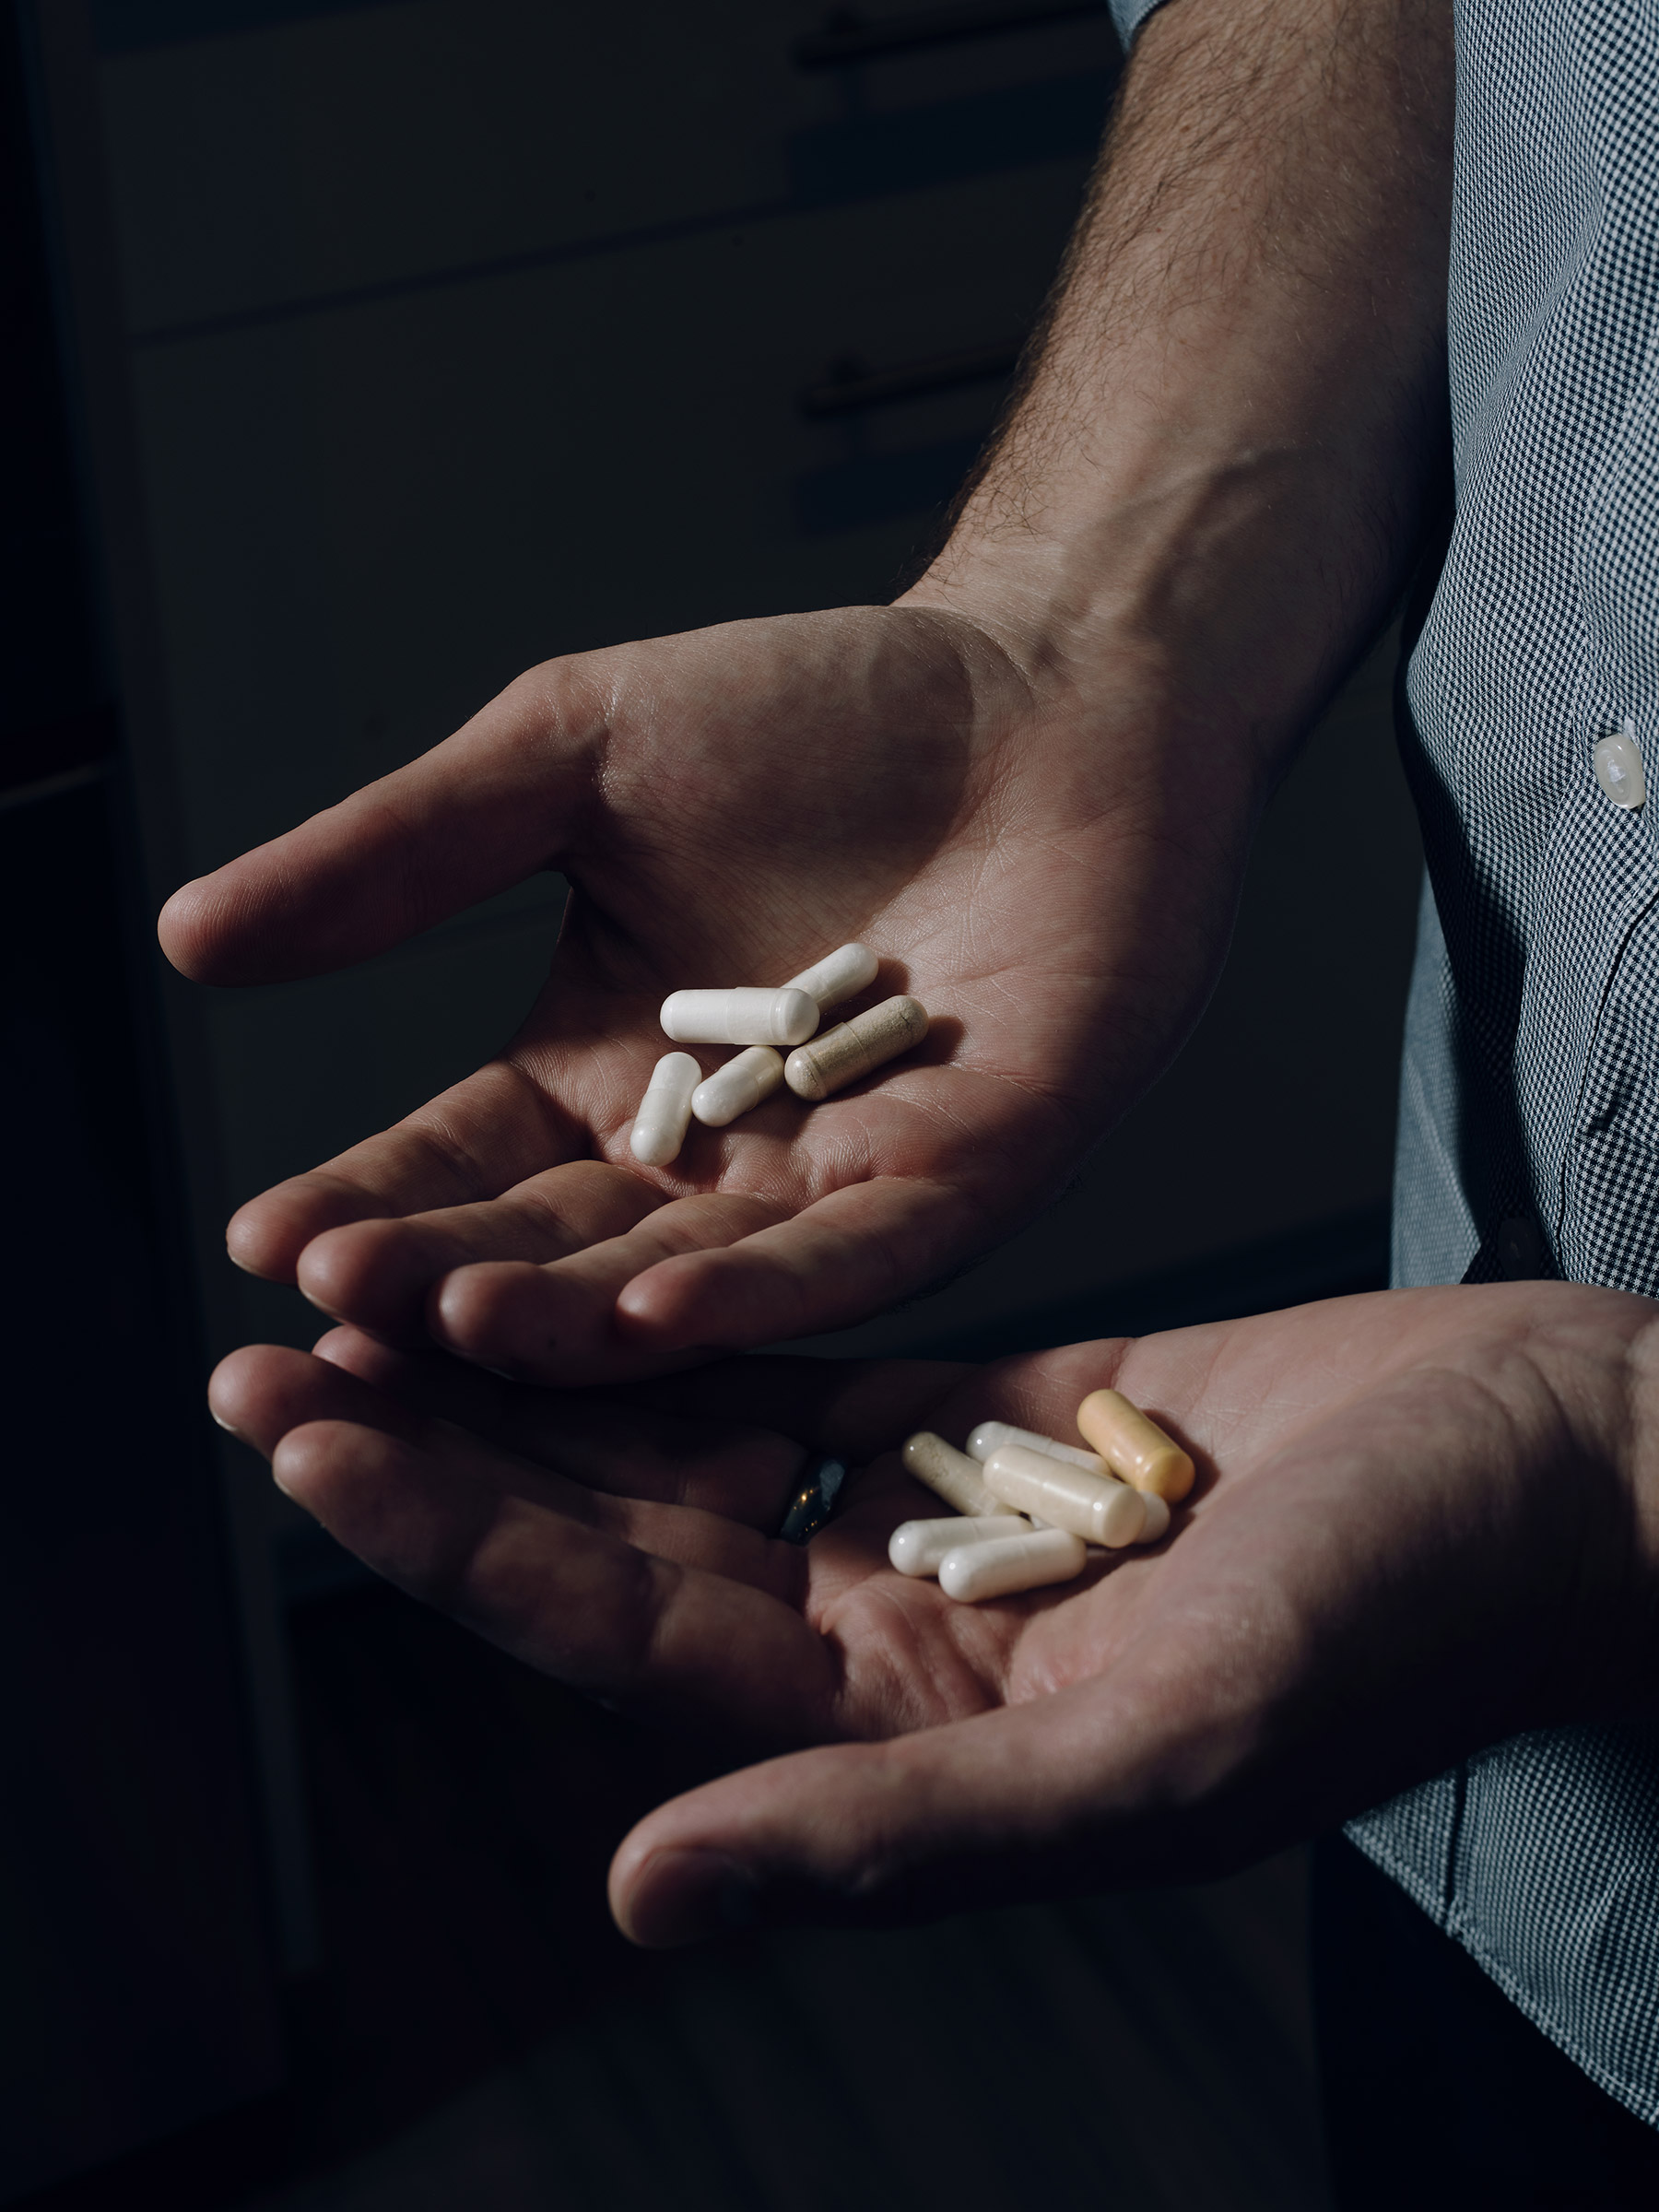 To keep his blood lead levels low, Virginia Tech shooting survivor Colin Goddard has to swallow 31 pills a day as part of his chelation treatment, a chemical process used to rid the body of excess or toxic metals.